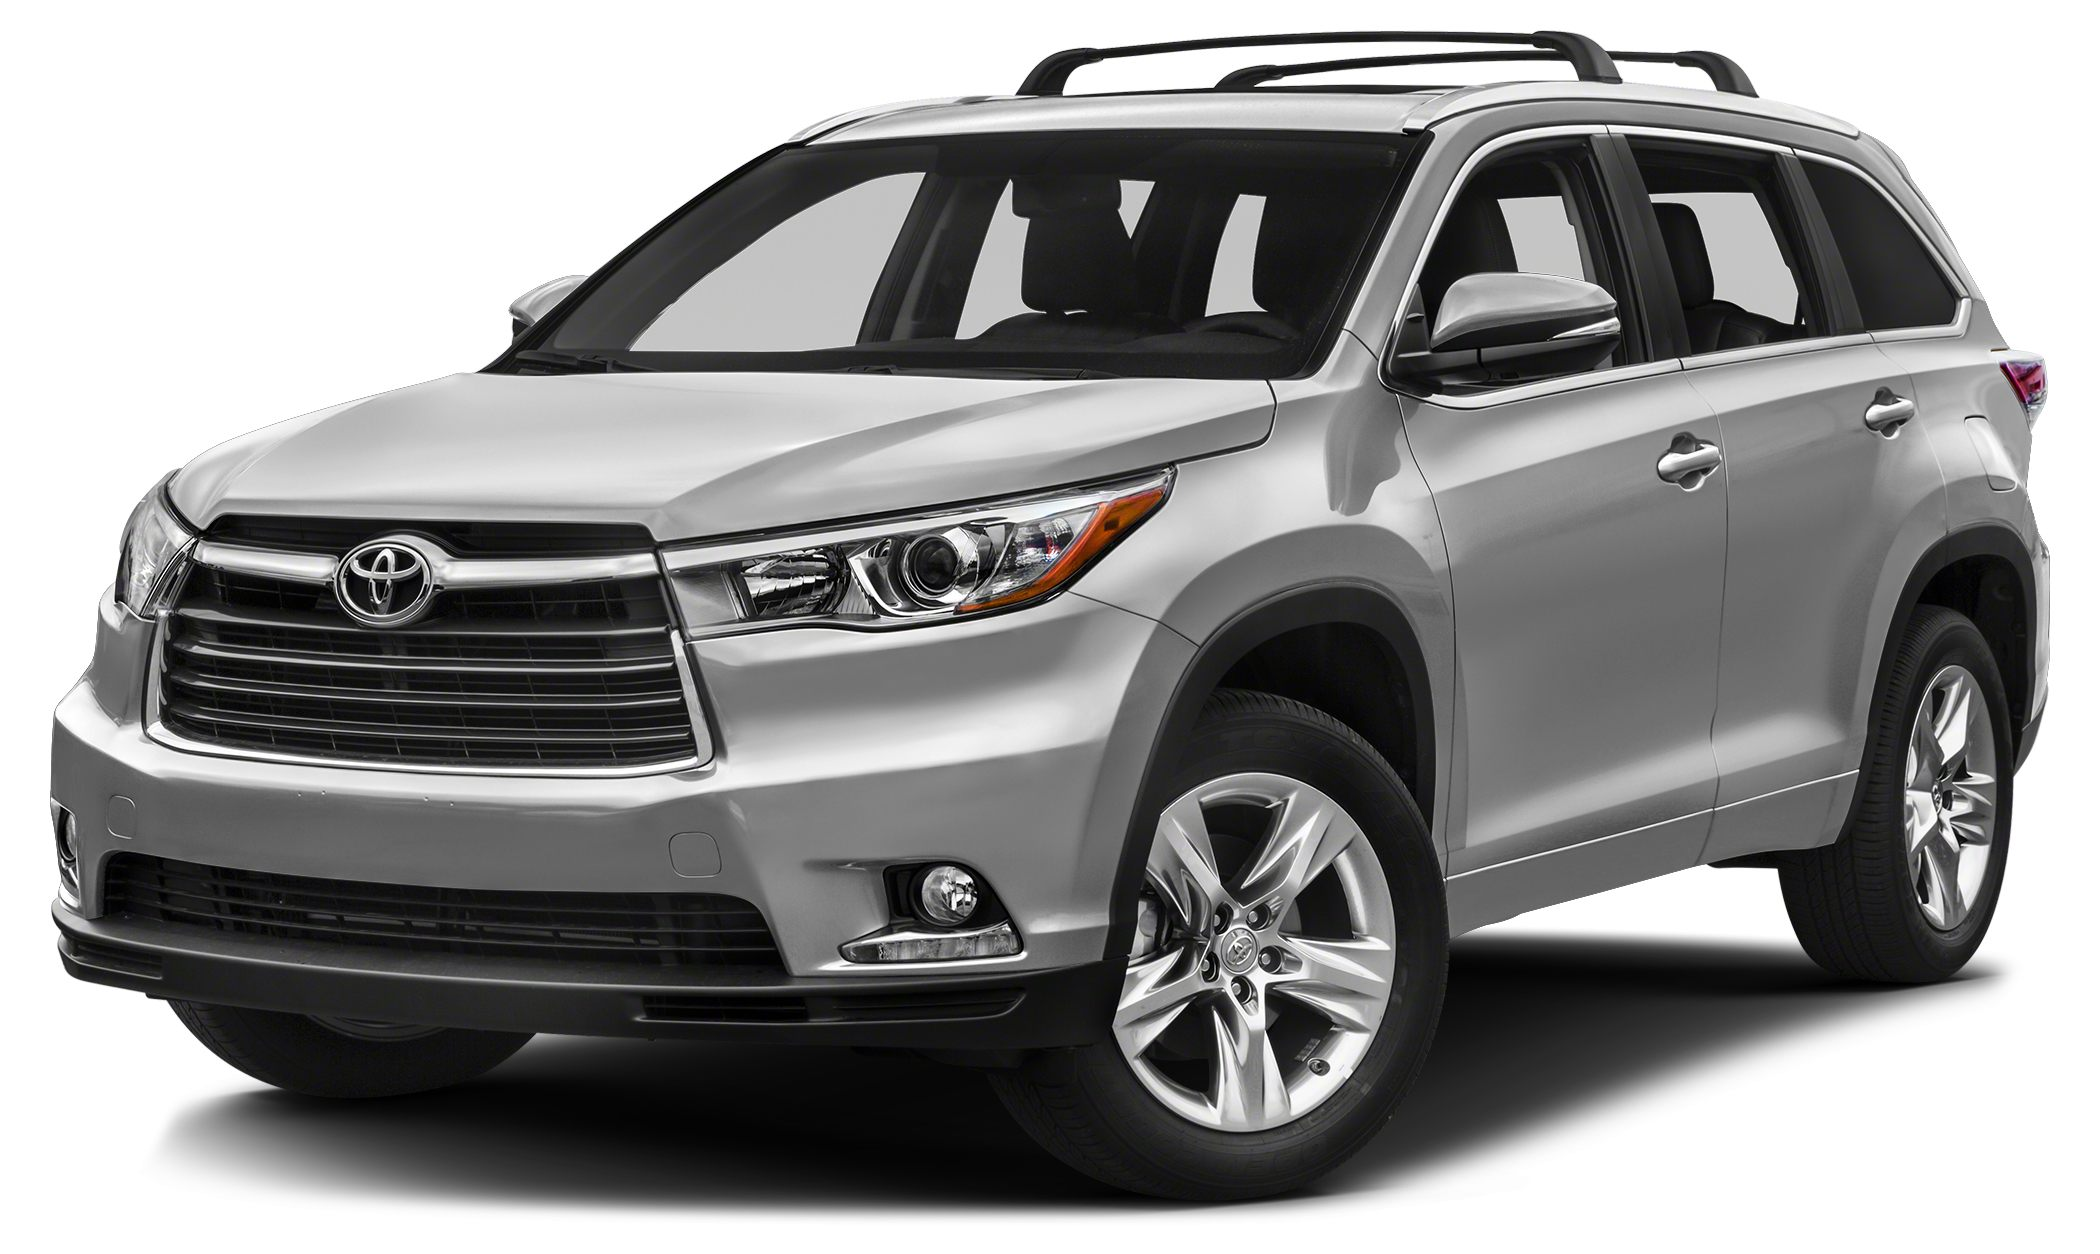 2015 Toyota Highlander Limited FUEL EFFICIENT 24 MPG Hwy18 MPG City CARFAX 1-Owner SILVER SKY M